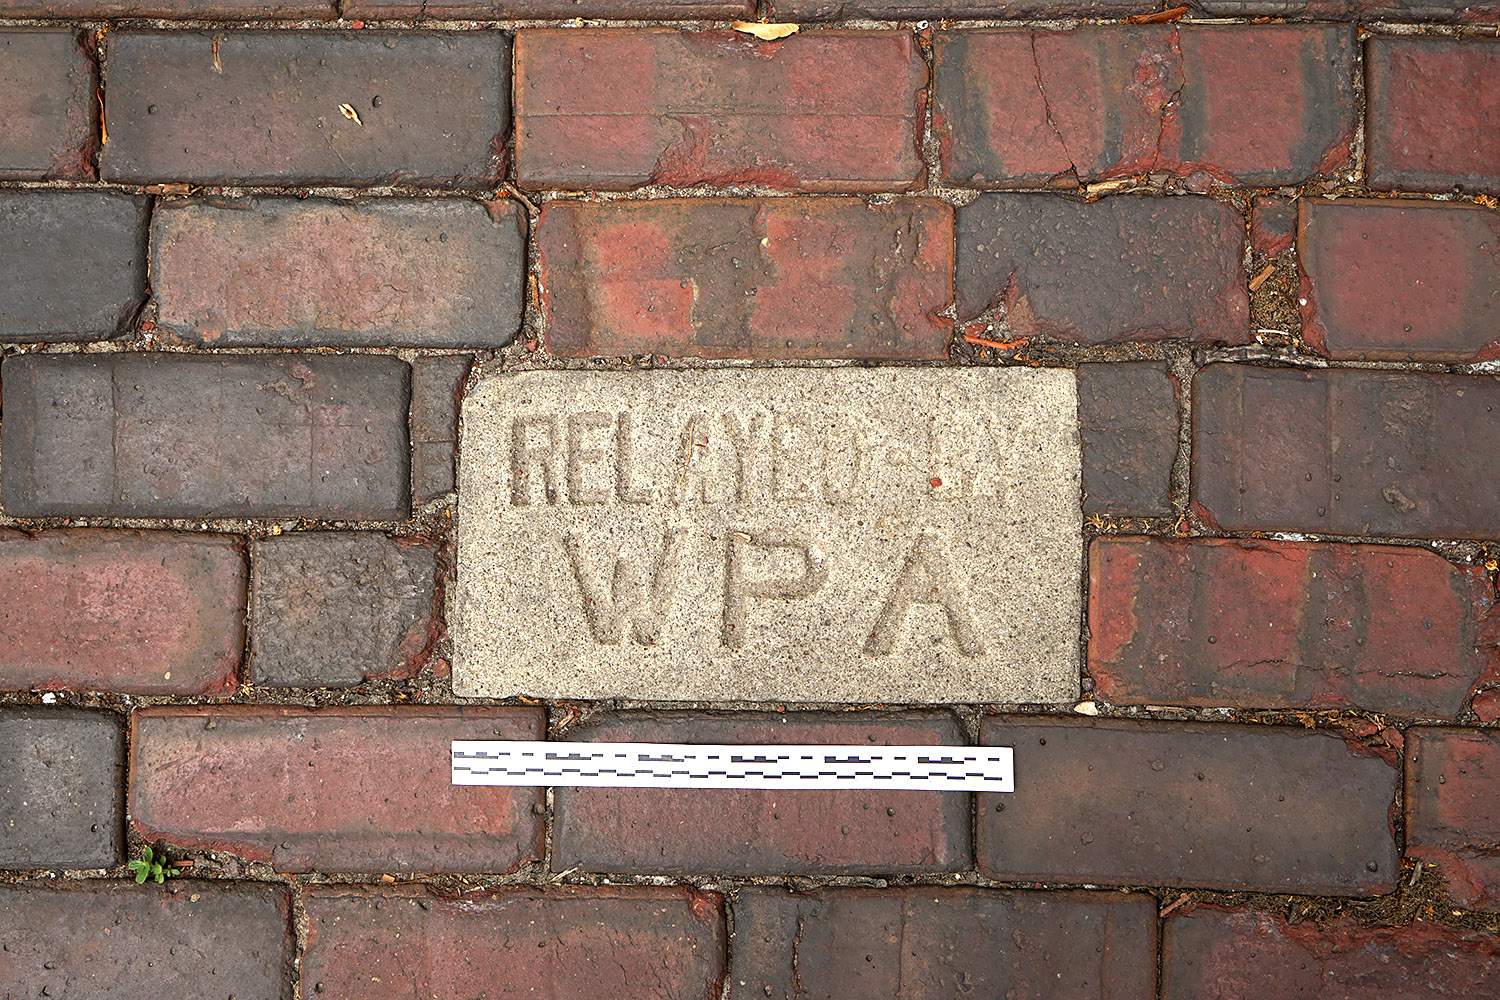 Embedded concrete plaque installed by the Works Progress Administration in the vitrified brick pavement, intersection of Woodbine Avenue and Crescent Place, Wilmette, Illinois, 2016. Photo by author.